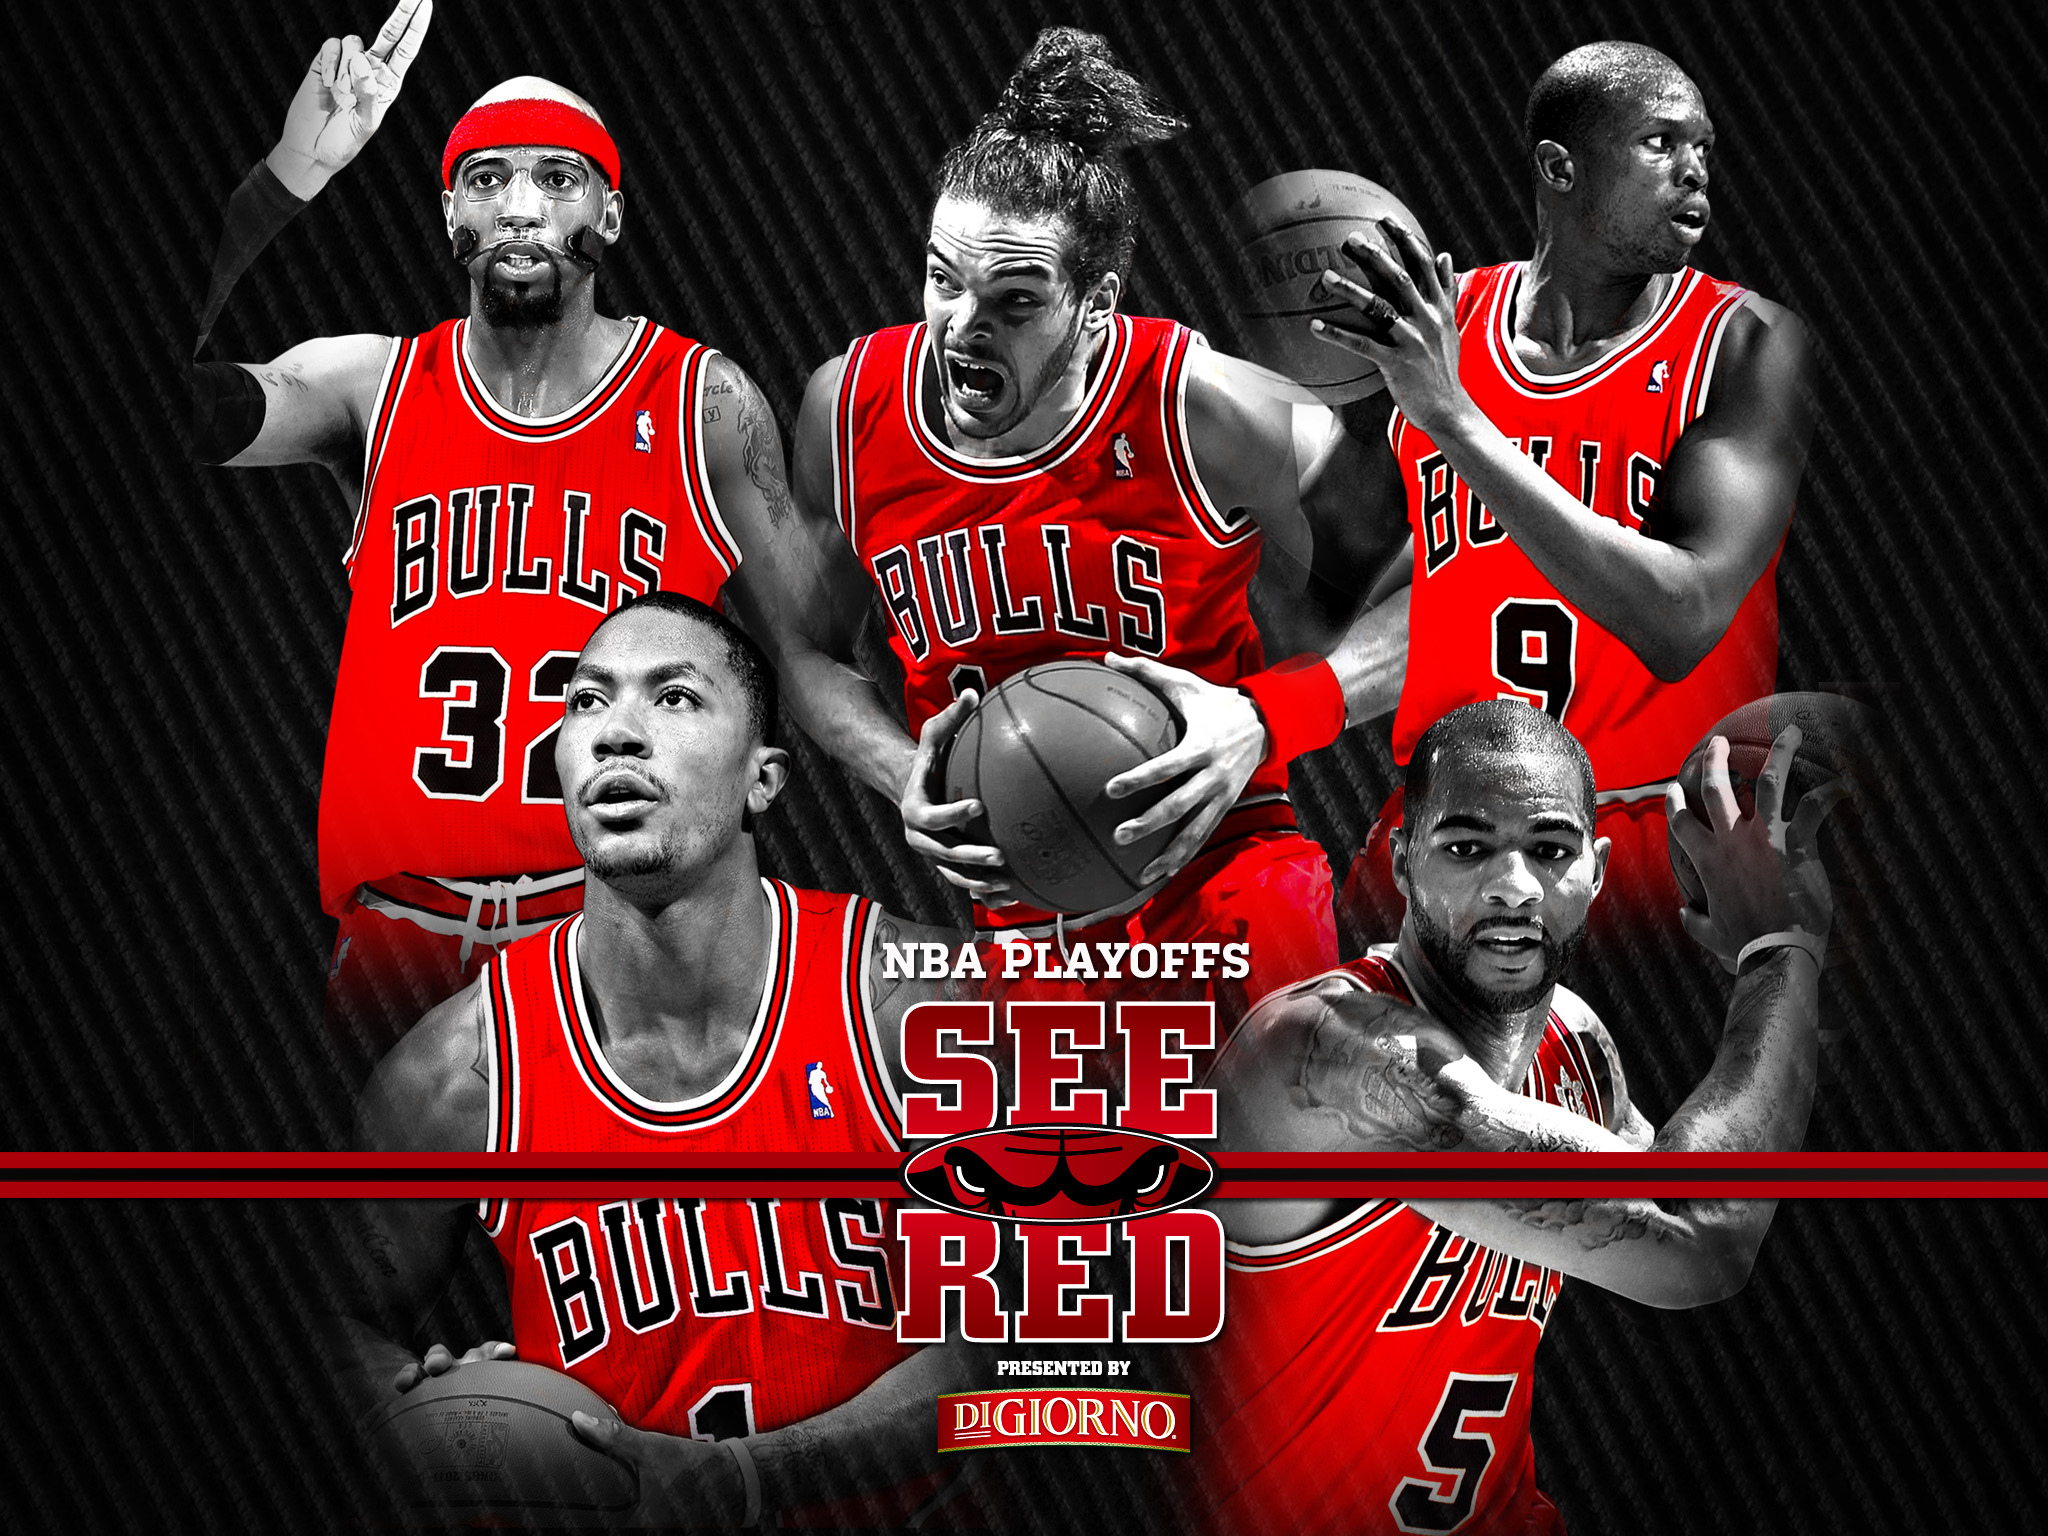 2012 playoffs see red wallpaper chicago bulls ipad retina voltagebd Images